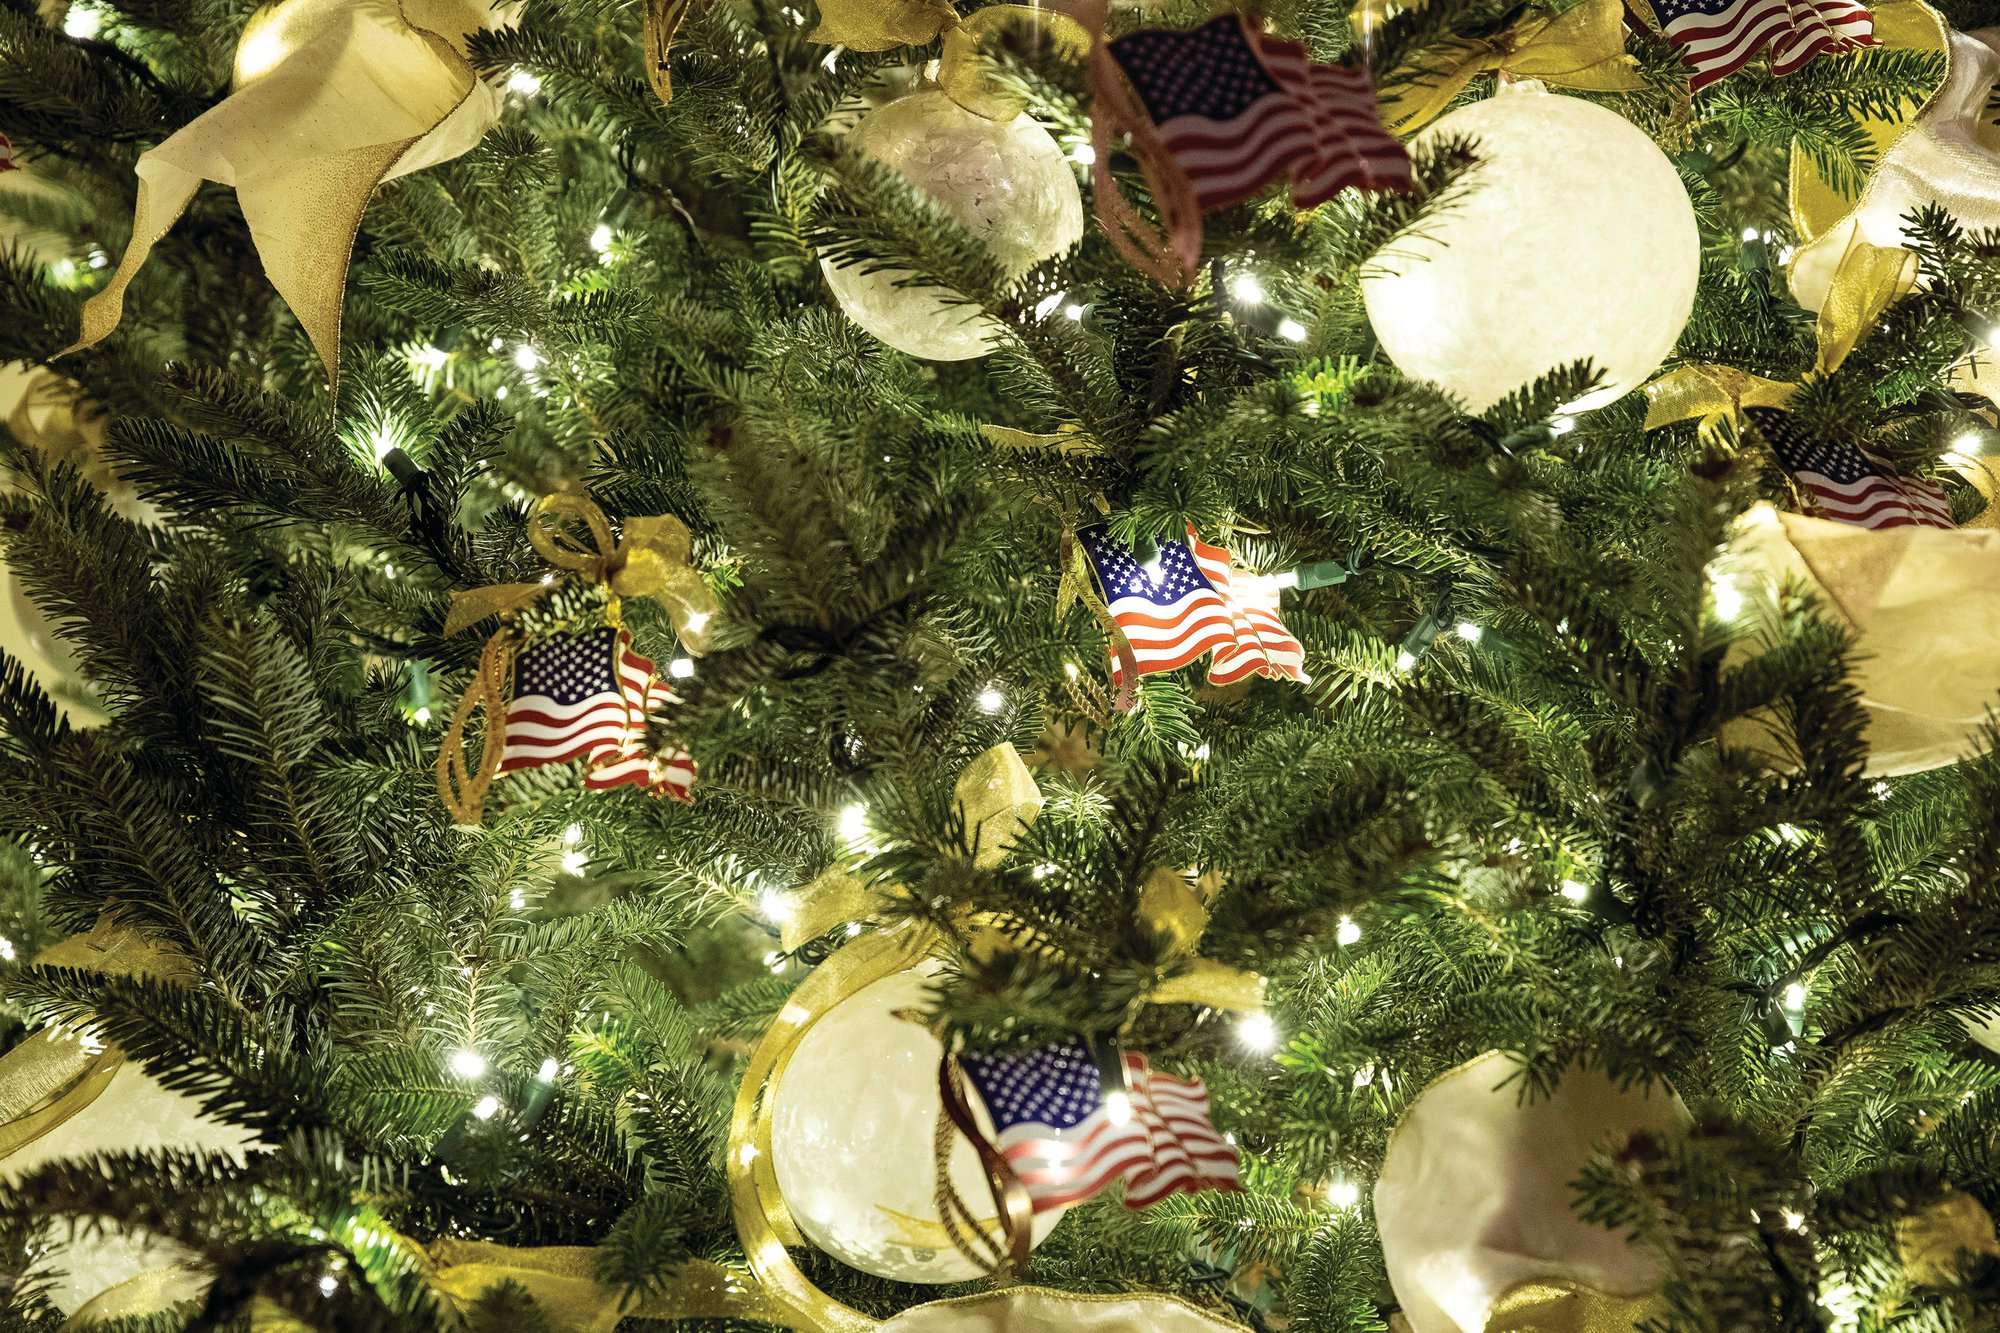 The First Family's annual ornament, the American flag, decorates a tree in the White House.